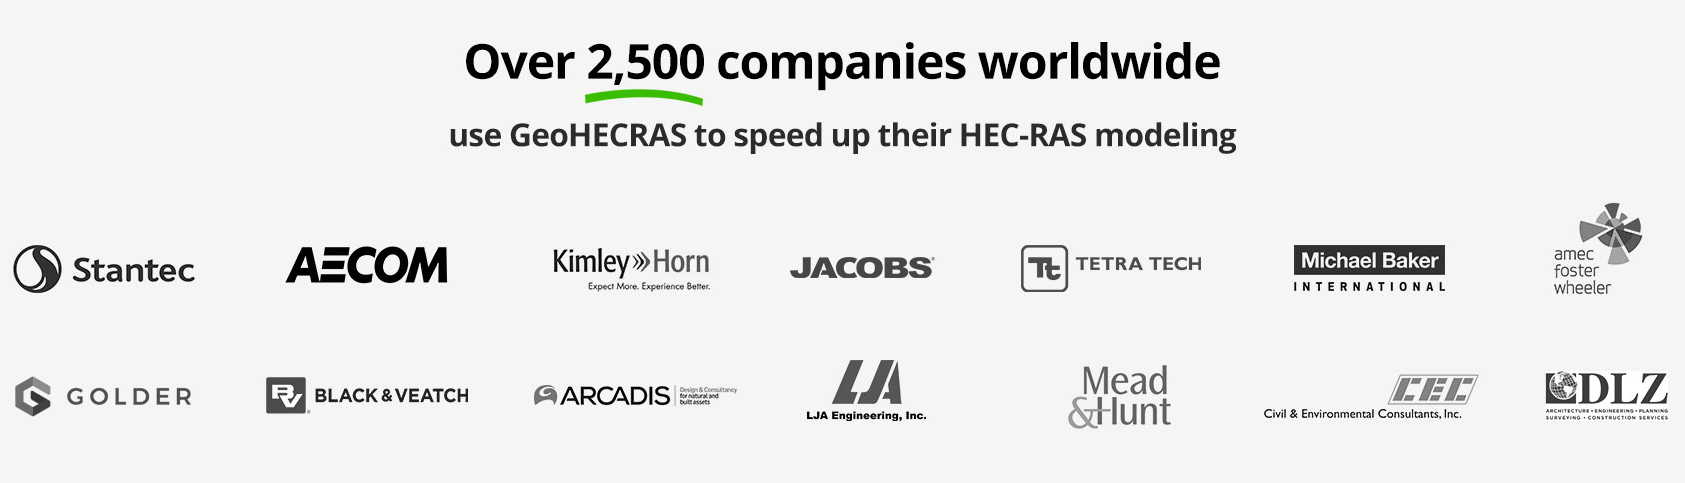 Over 2500 companies like Stantec, AECOM, Kimley Horn, Jacobs, Tetra Tech, Michael Baker, Amec Foster Wheeler, Golder use our HEC-RAS and HEC-HMS software to speed up their engineering workflows